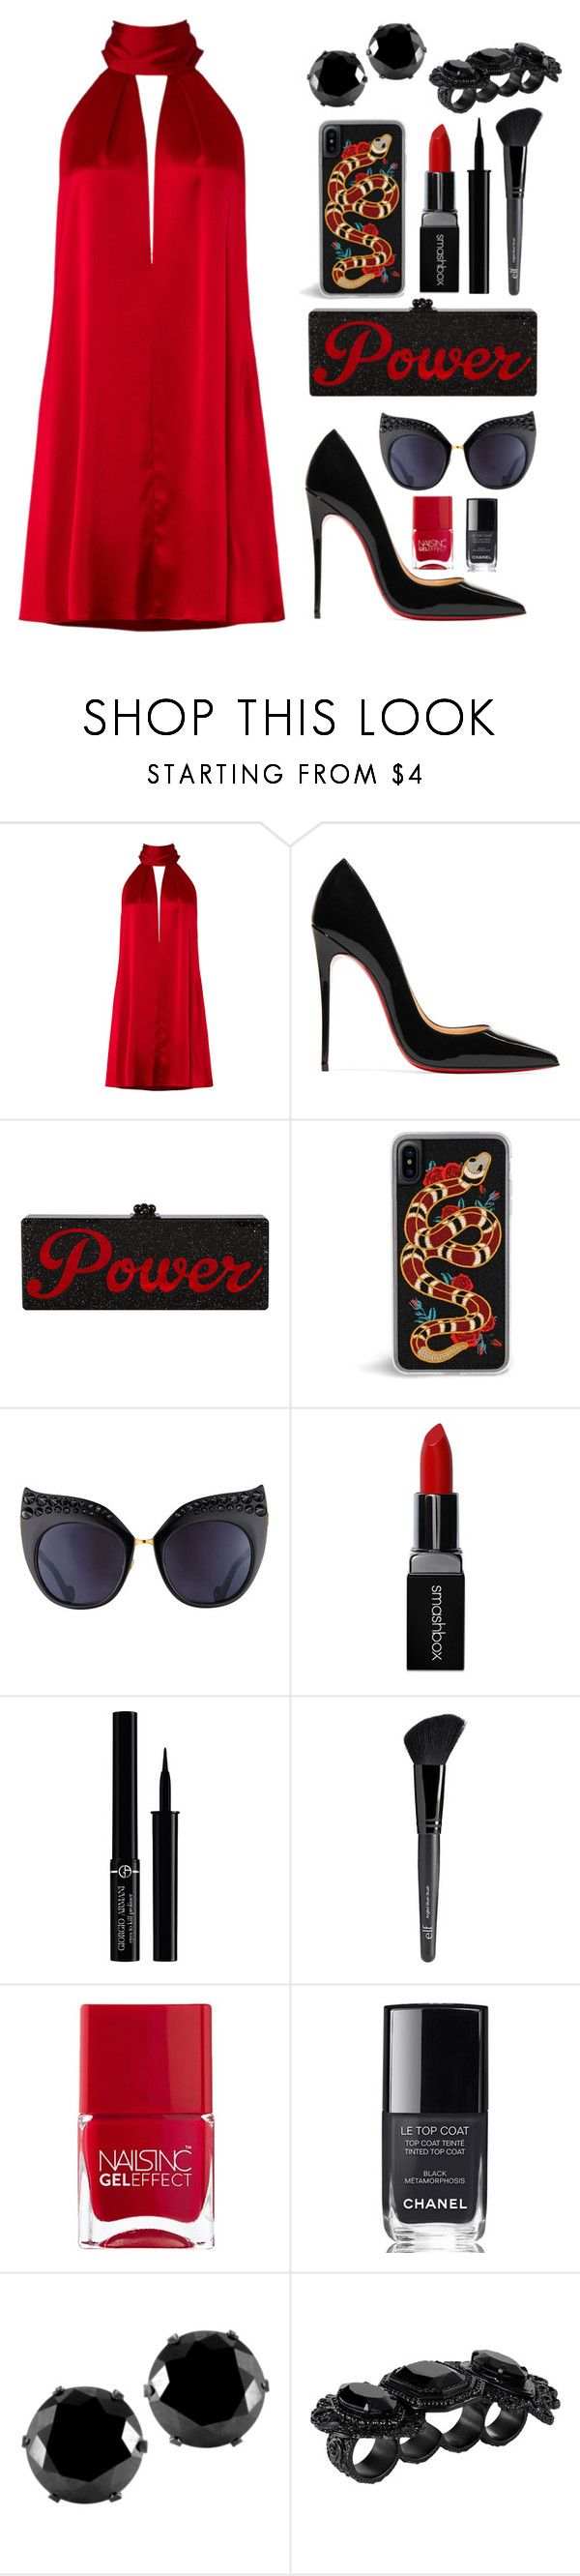 """POWER"" by ellesbells78 ❤ liked on Polyvore featuring Galvan, Christian Louboutin, Anna-Karin Karlsson, Smashbox, Giorgio Armani, Old Navy, Nails Inc., Chanel, West Coast Jewelry and Dsquared2"